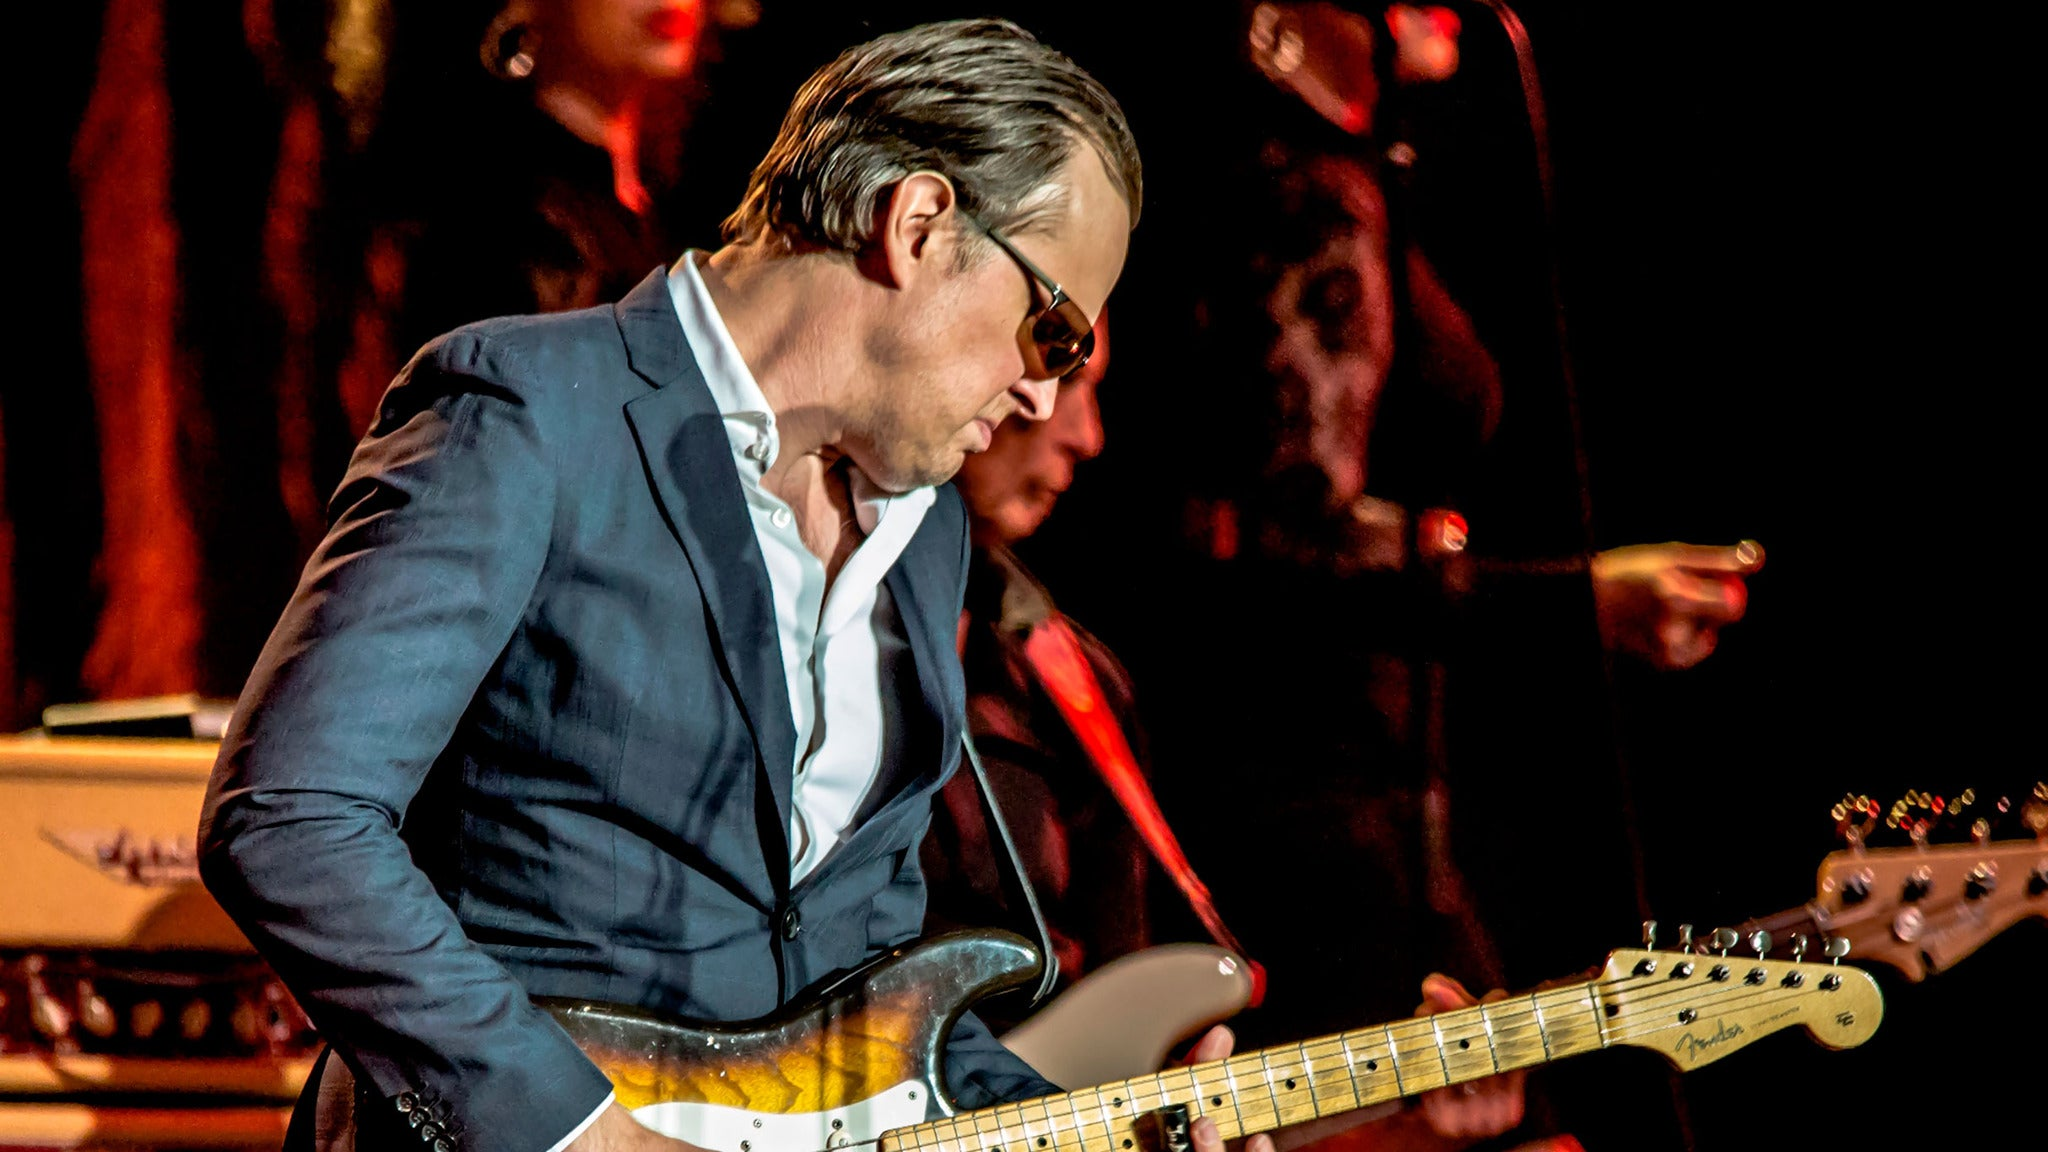 Joe Bonamassa at Coronado Performing Arts Center